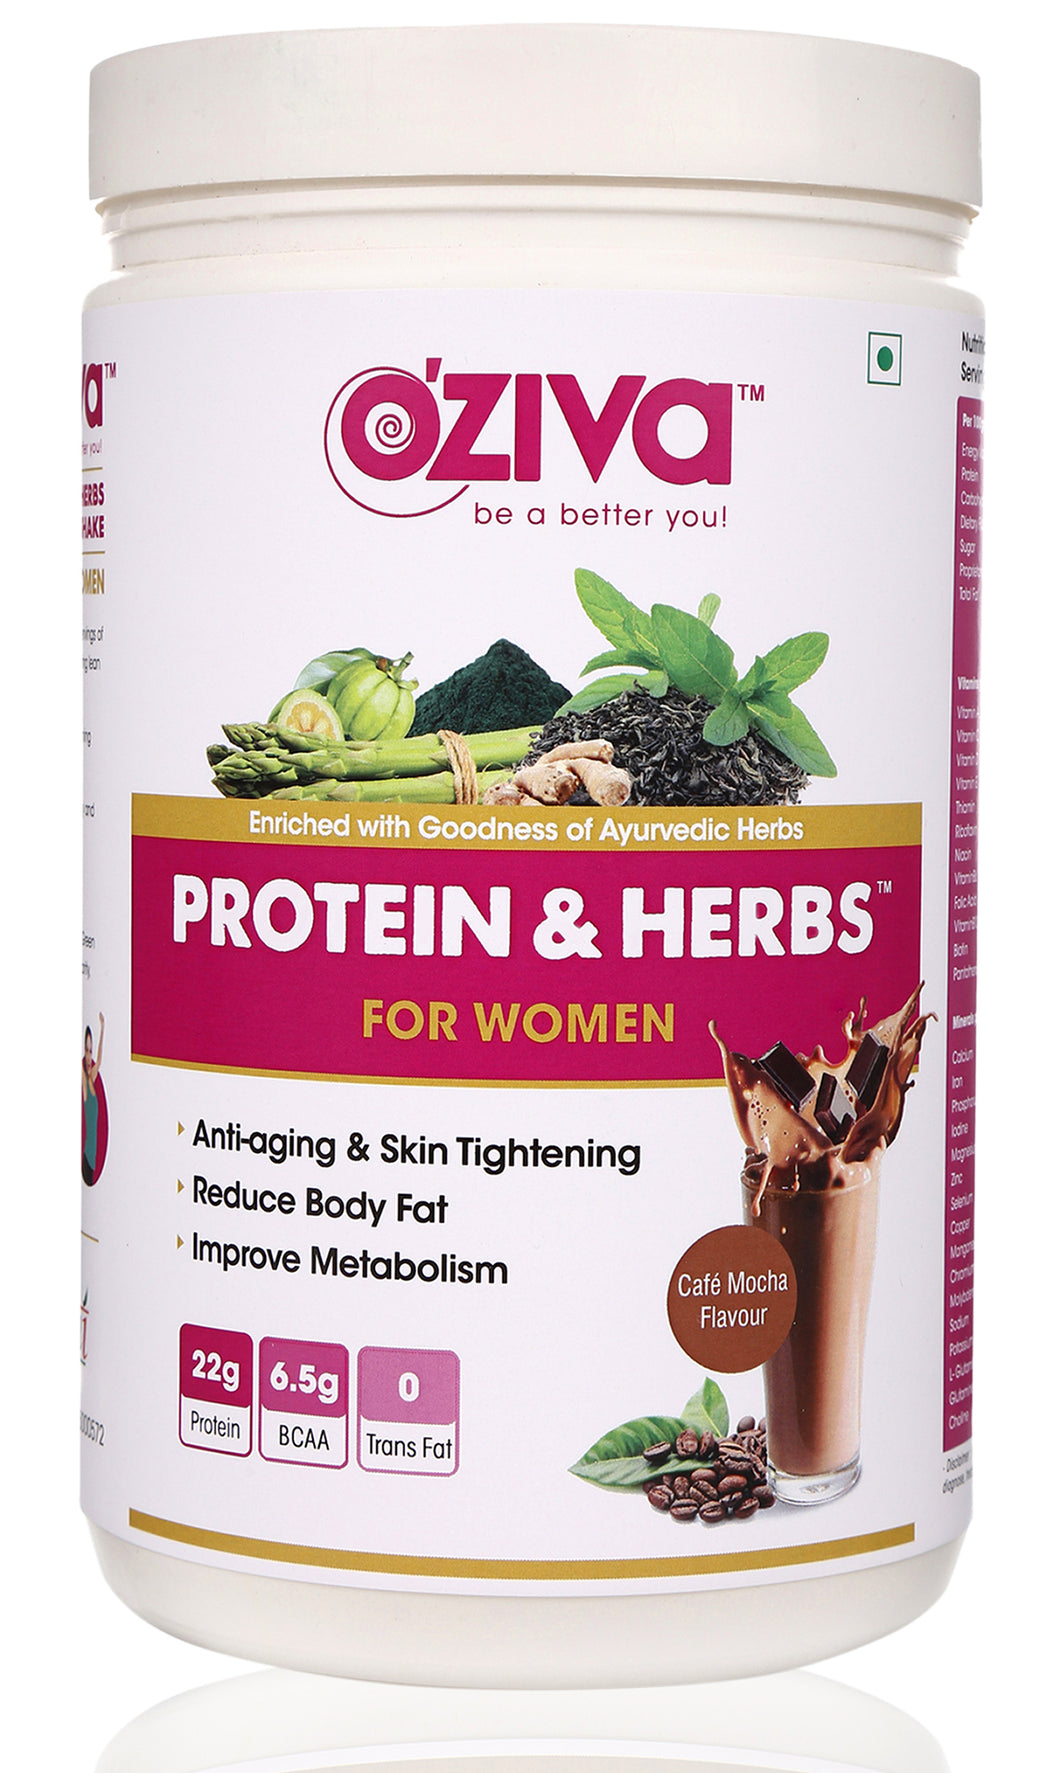 [CLEARANCE SPECIAL] OZiva Protein & Herbs, Women - Cafe Mocha, Whey Protein Powder with Ayurvedic Herbs & Multivitamins ( Soy Free, Gluten Free, No Preservatives )